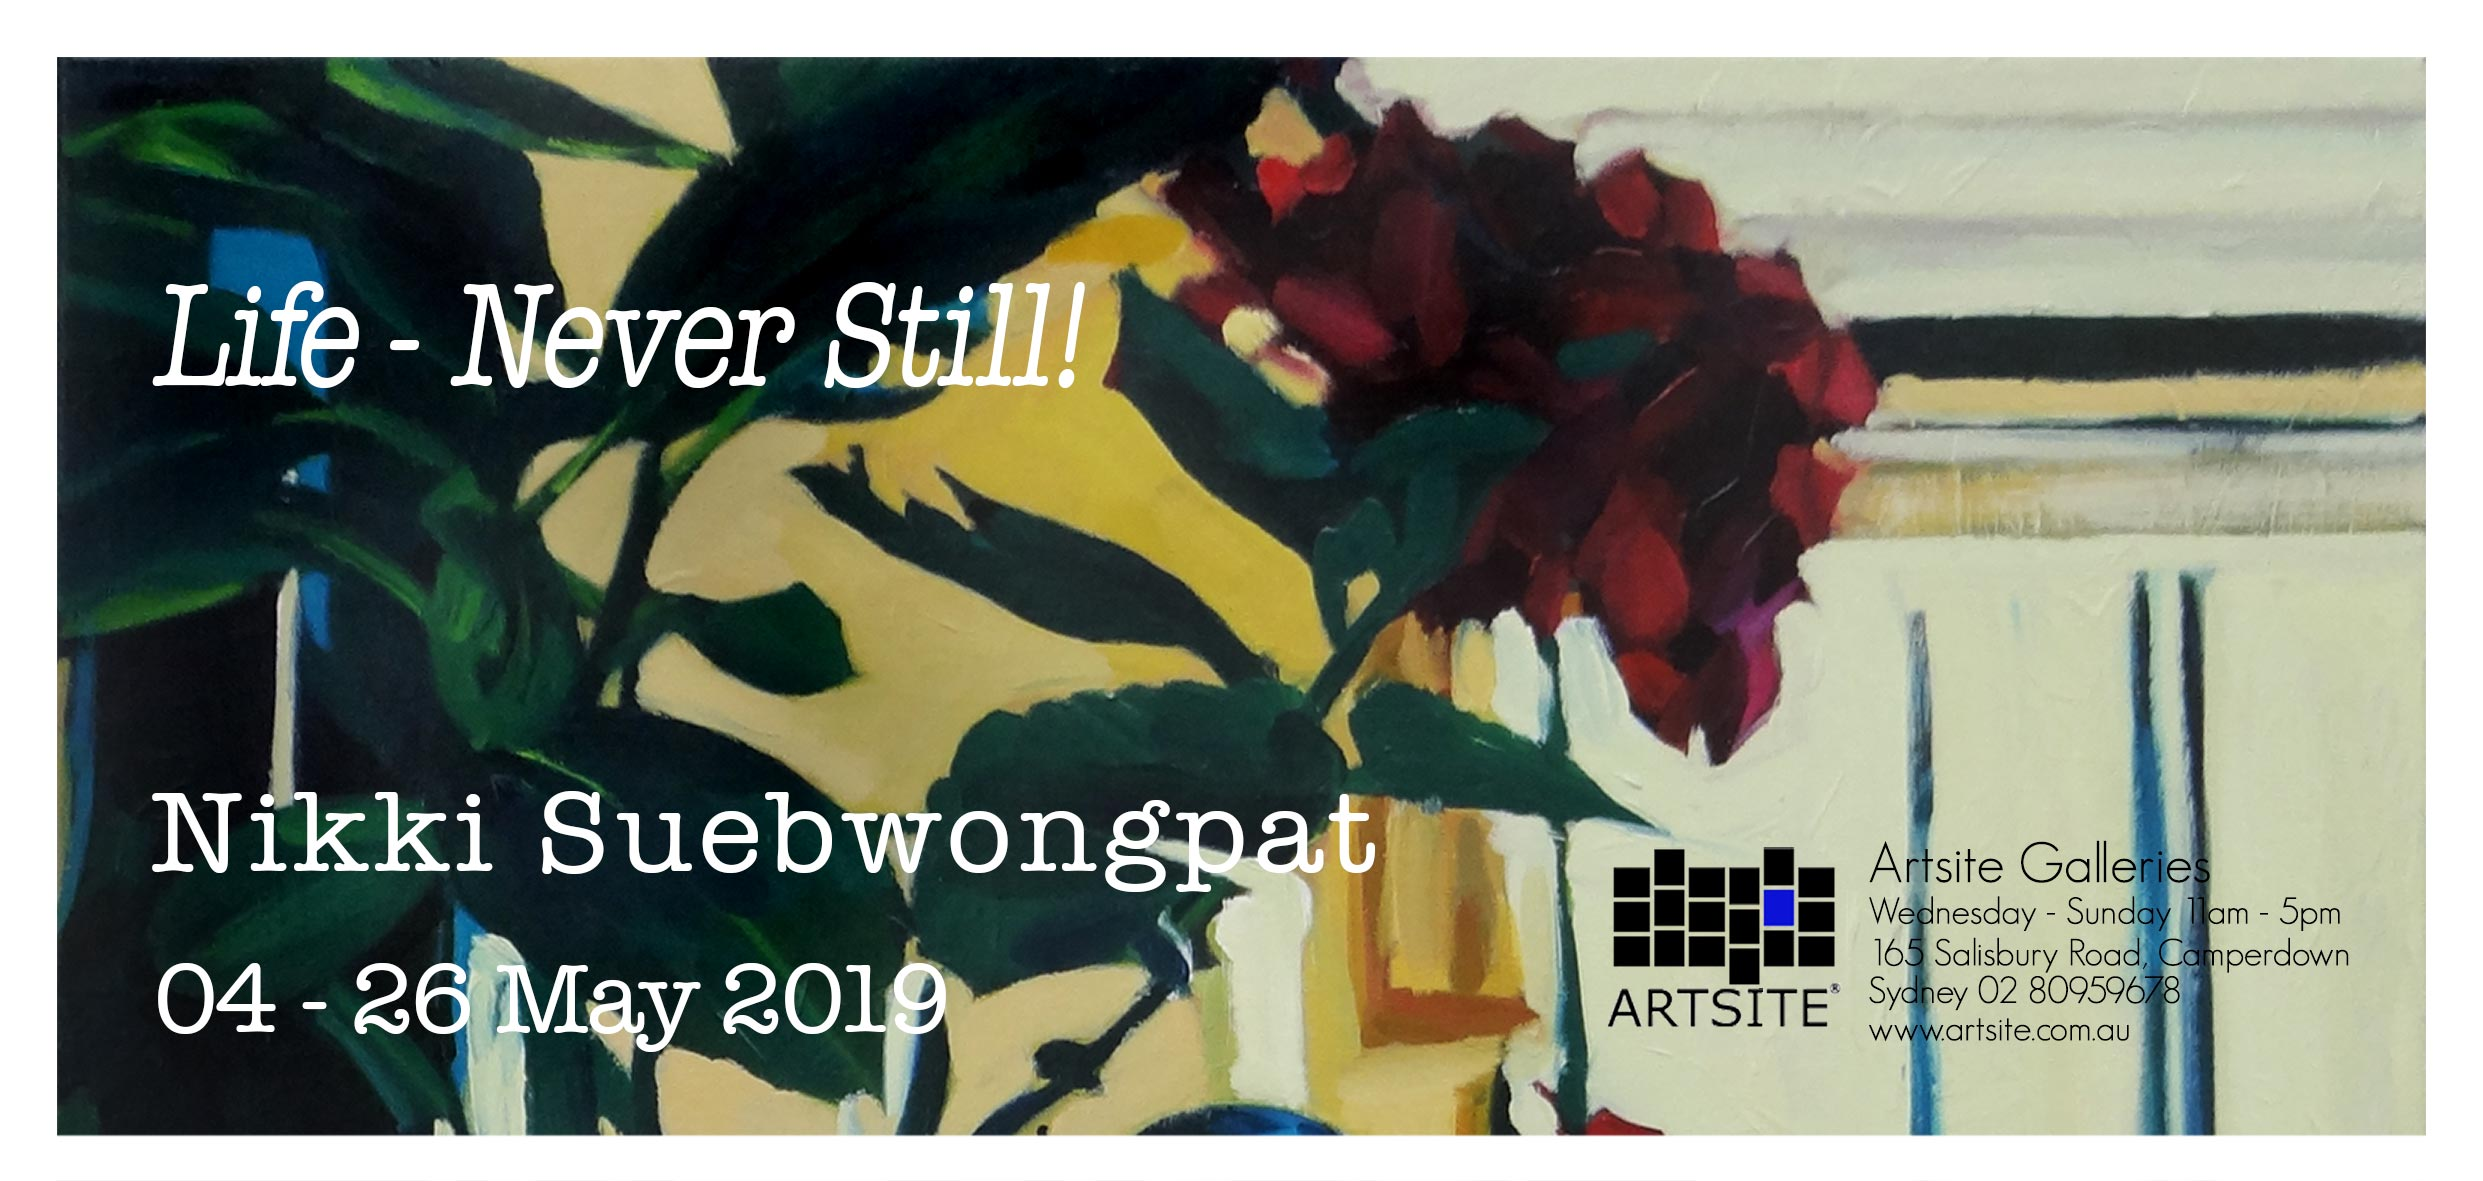 Artsite Gallery Exhibition | Gallery.1 | Nikki Suebwongpat | Life - Never Still! | 04 - 26 May 2019